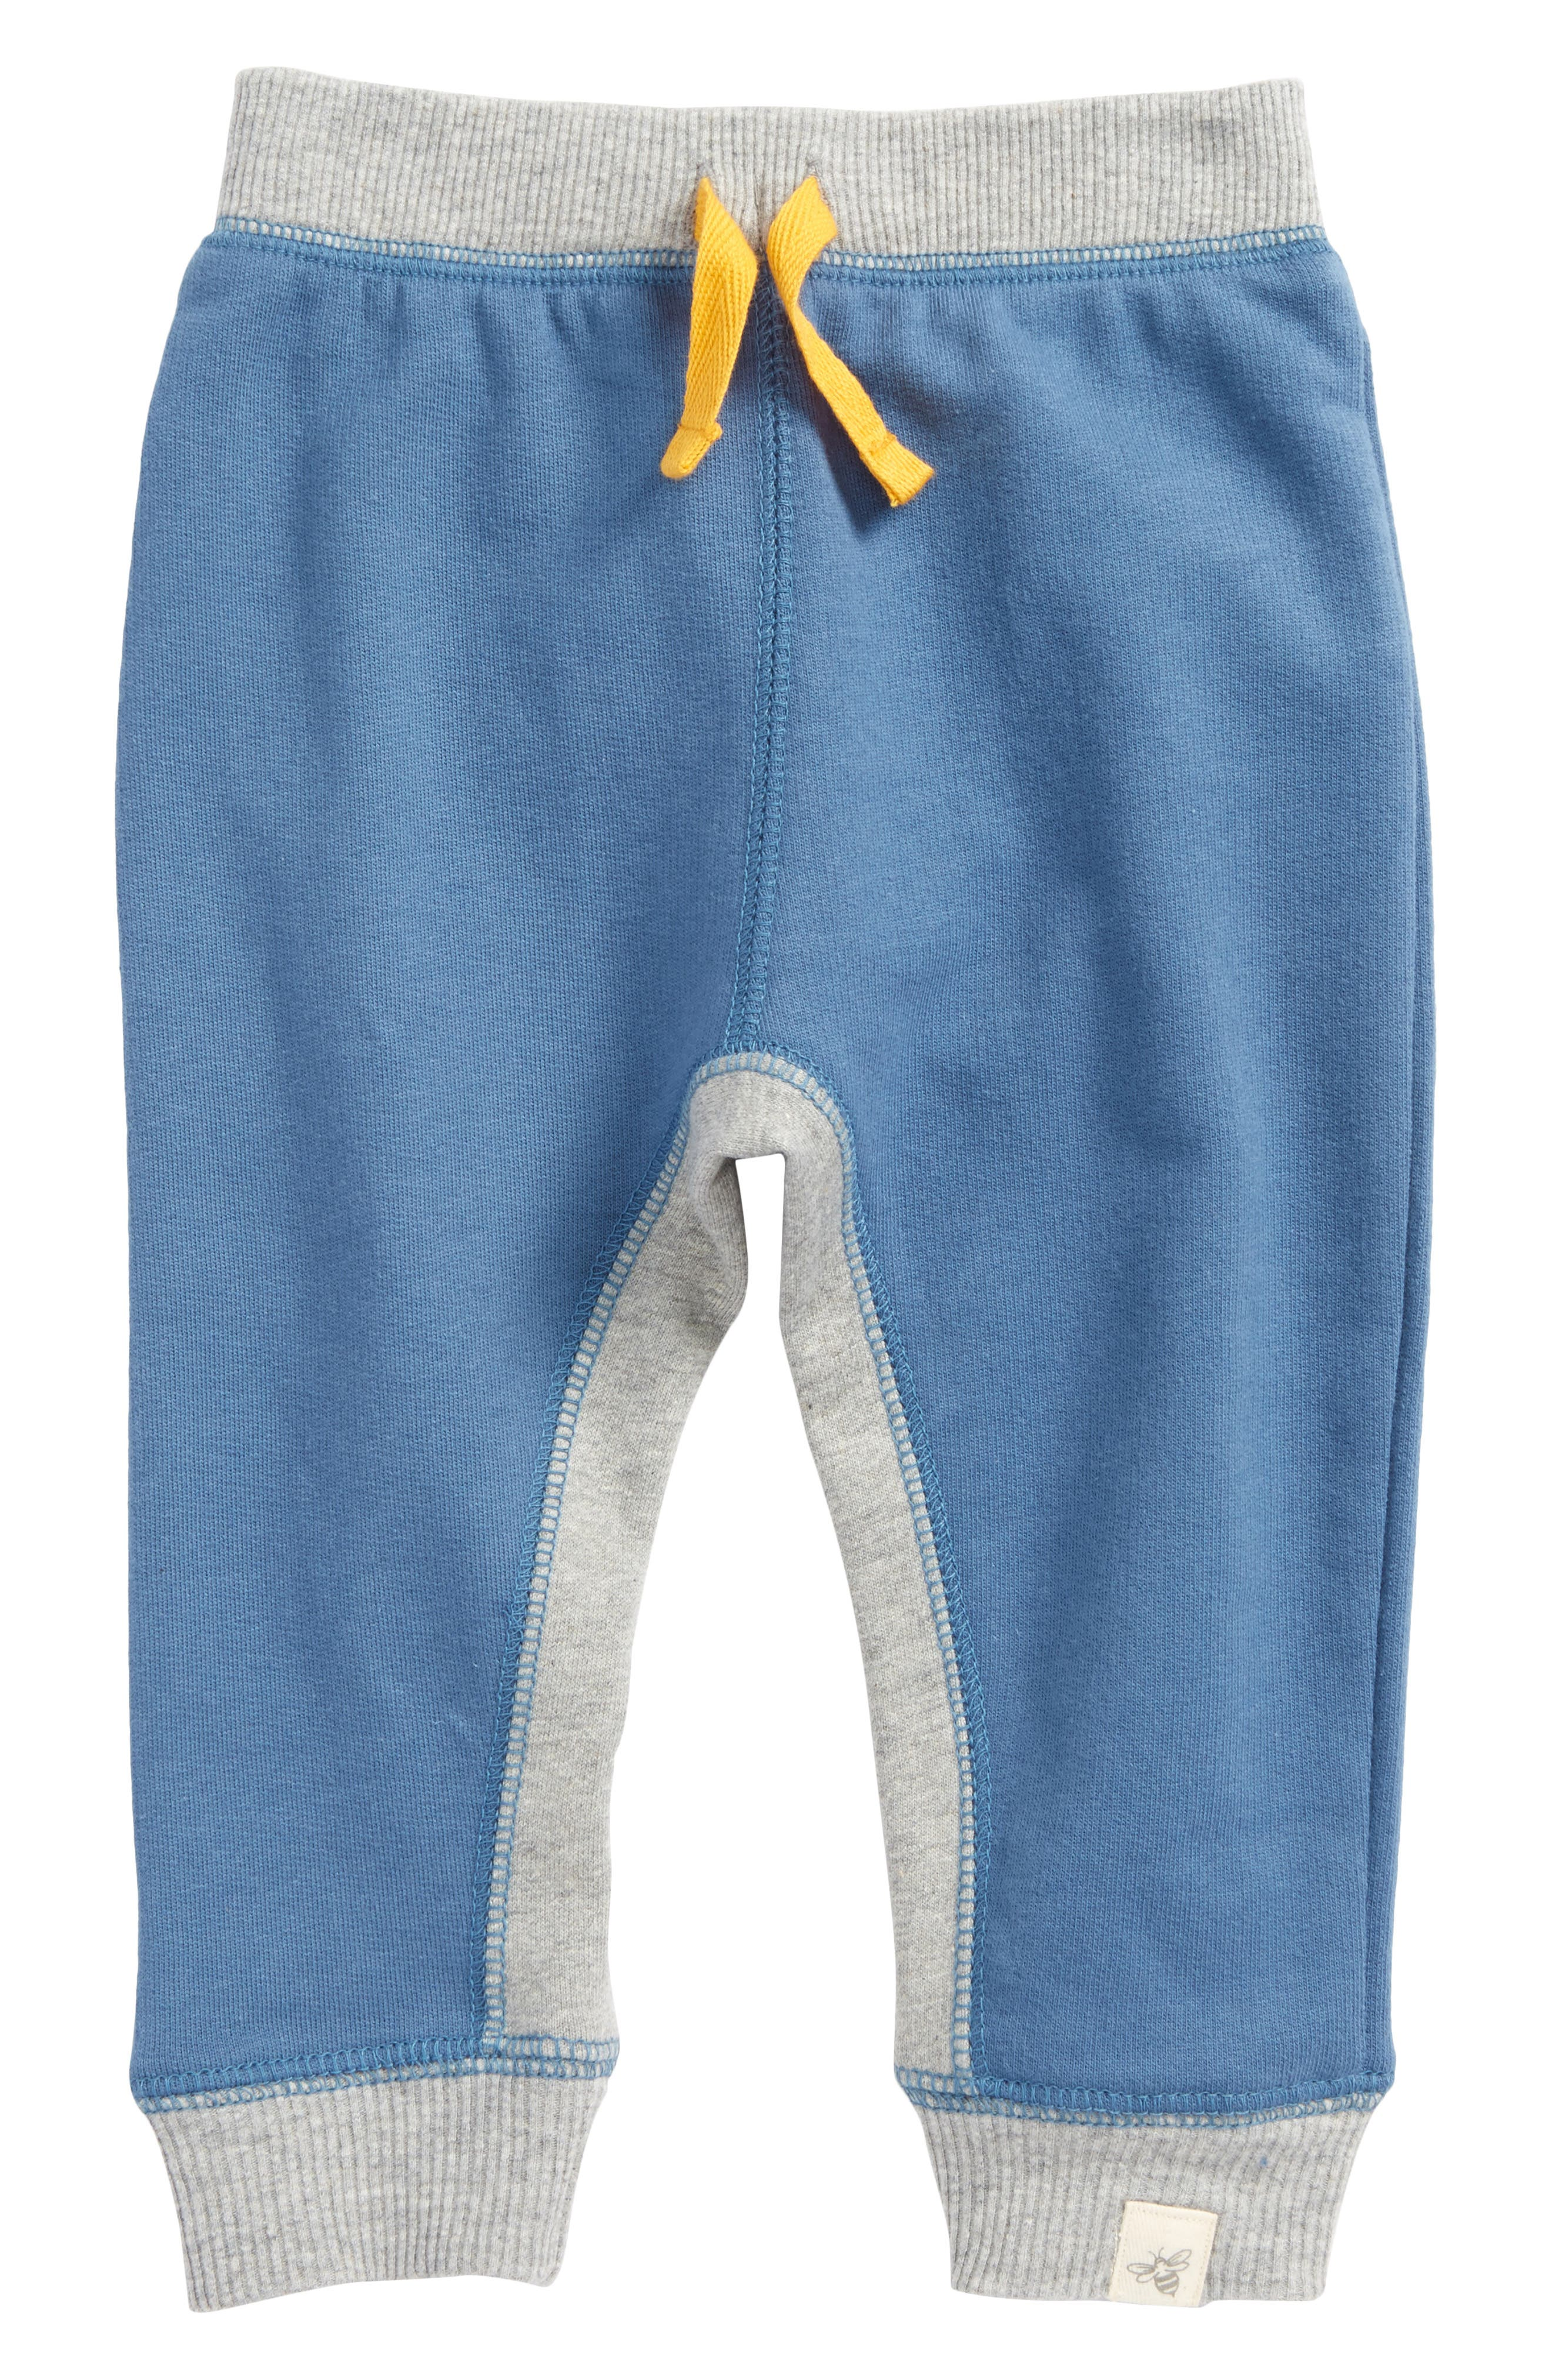 Main Image - Burt's Bees Baby Organic Cotton French Terry Pants (Baby Boys)